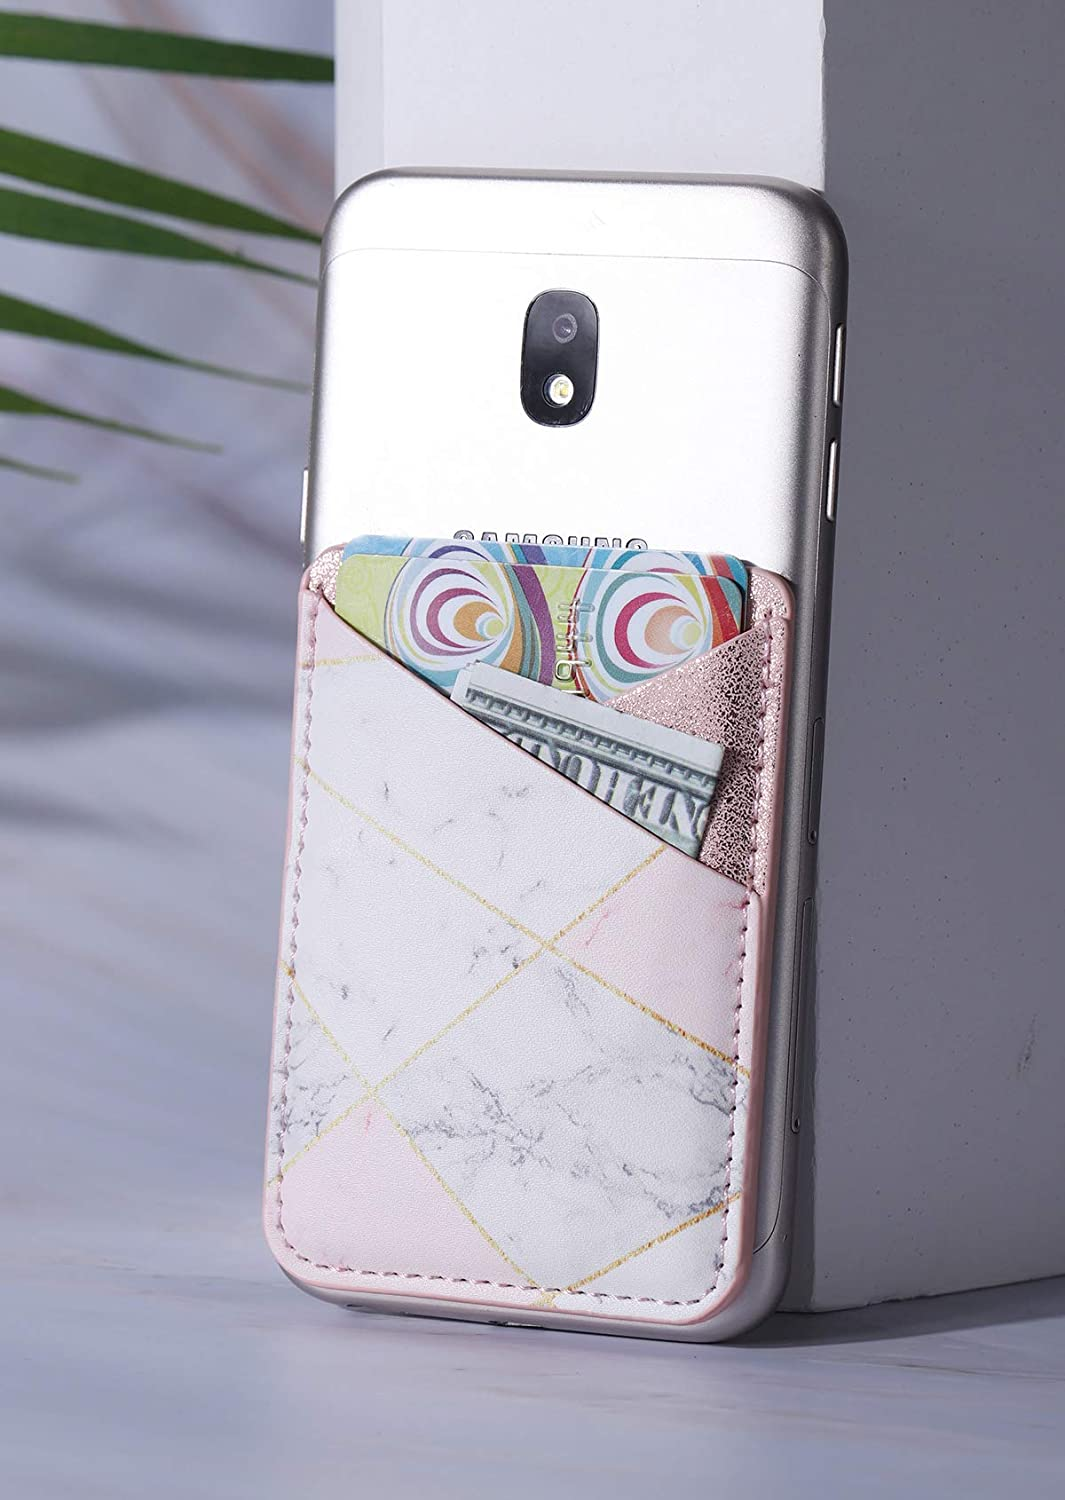 with 3M Sticker for Back of iPhone,Android and All Smartphones-Cubic Marble Double Secure 2Pack PU Leather Phone Pocket,Cell Phone Stick On Card Wallet,Credit Cards//ID Card Holder